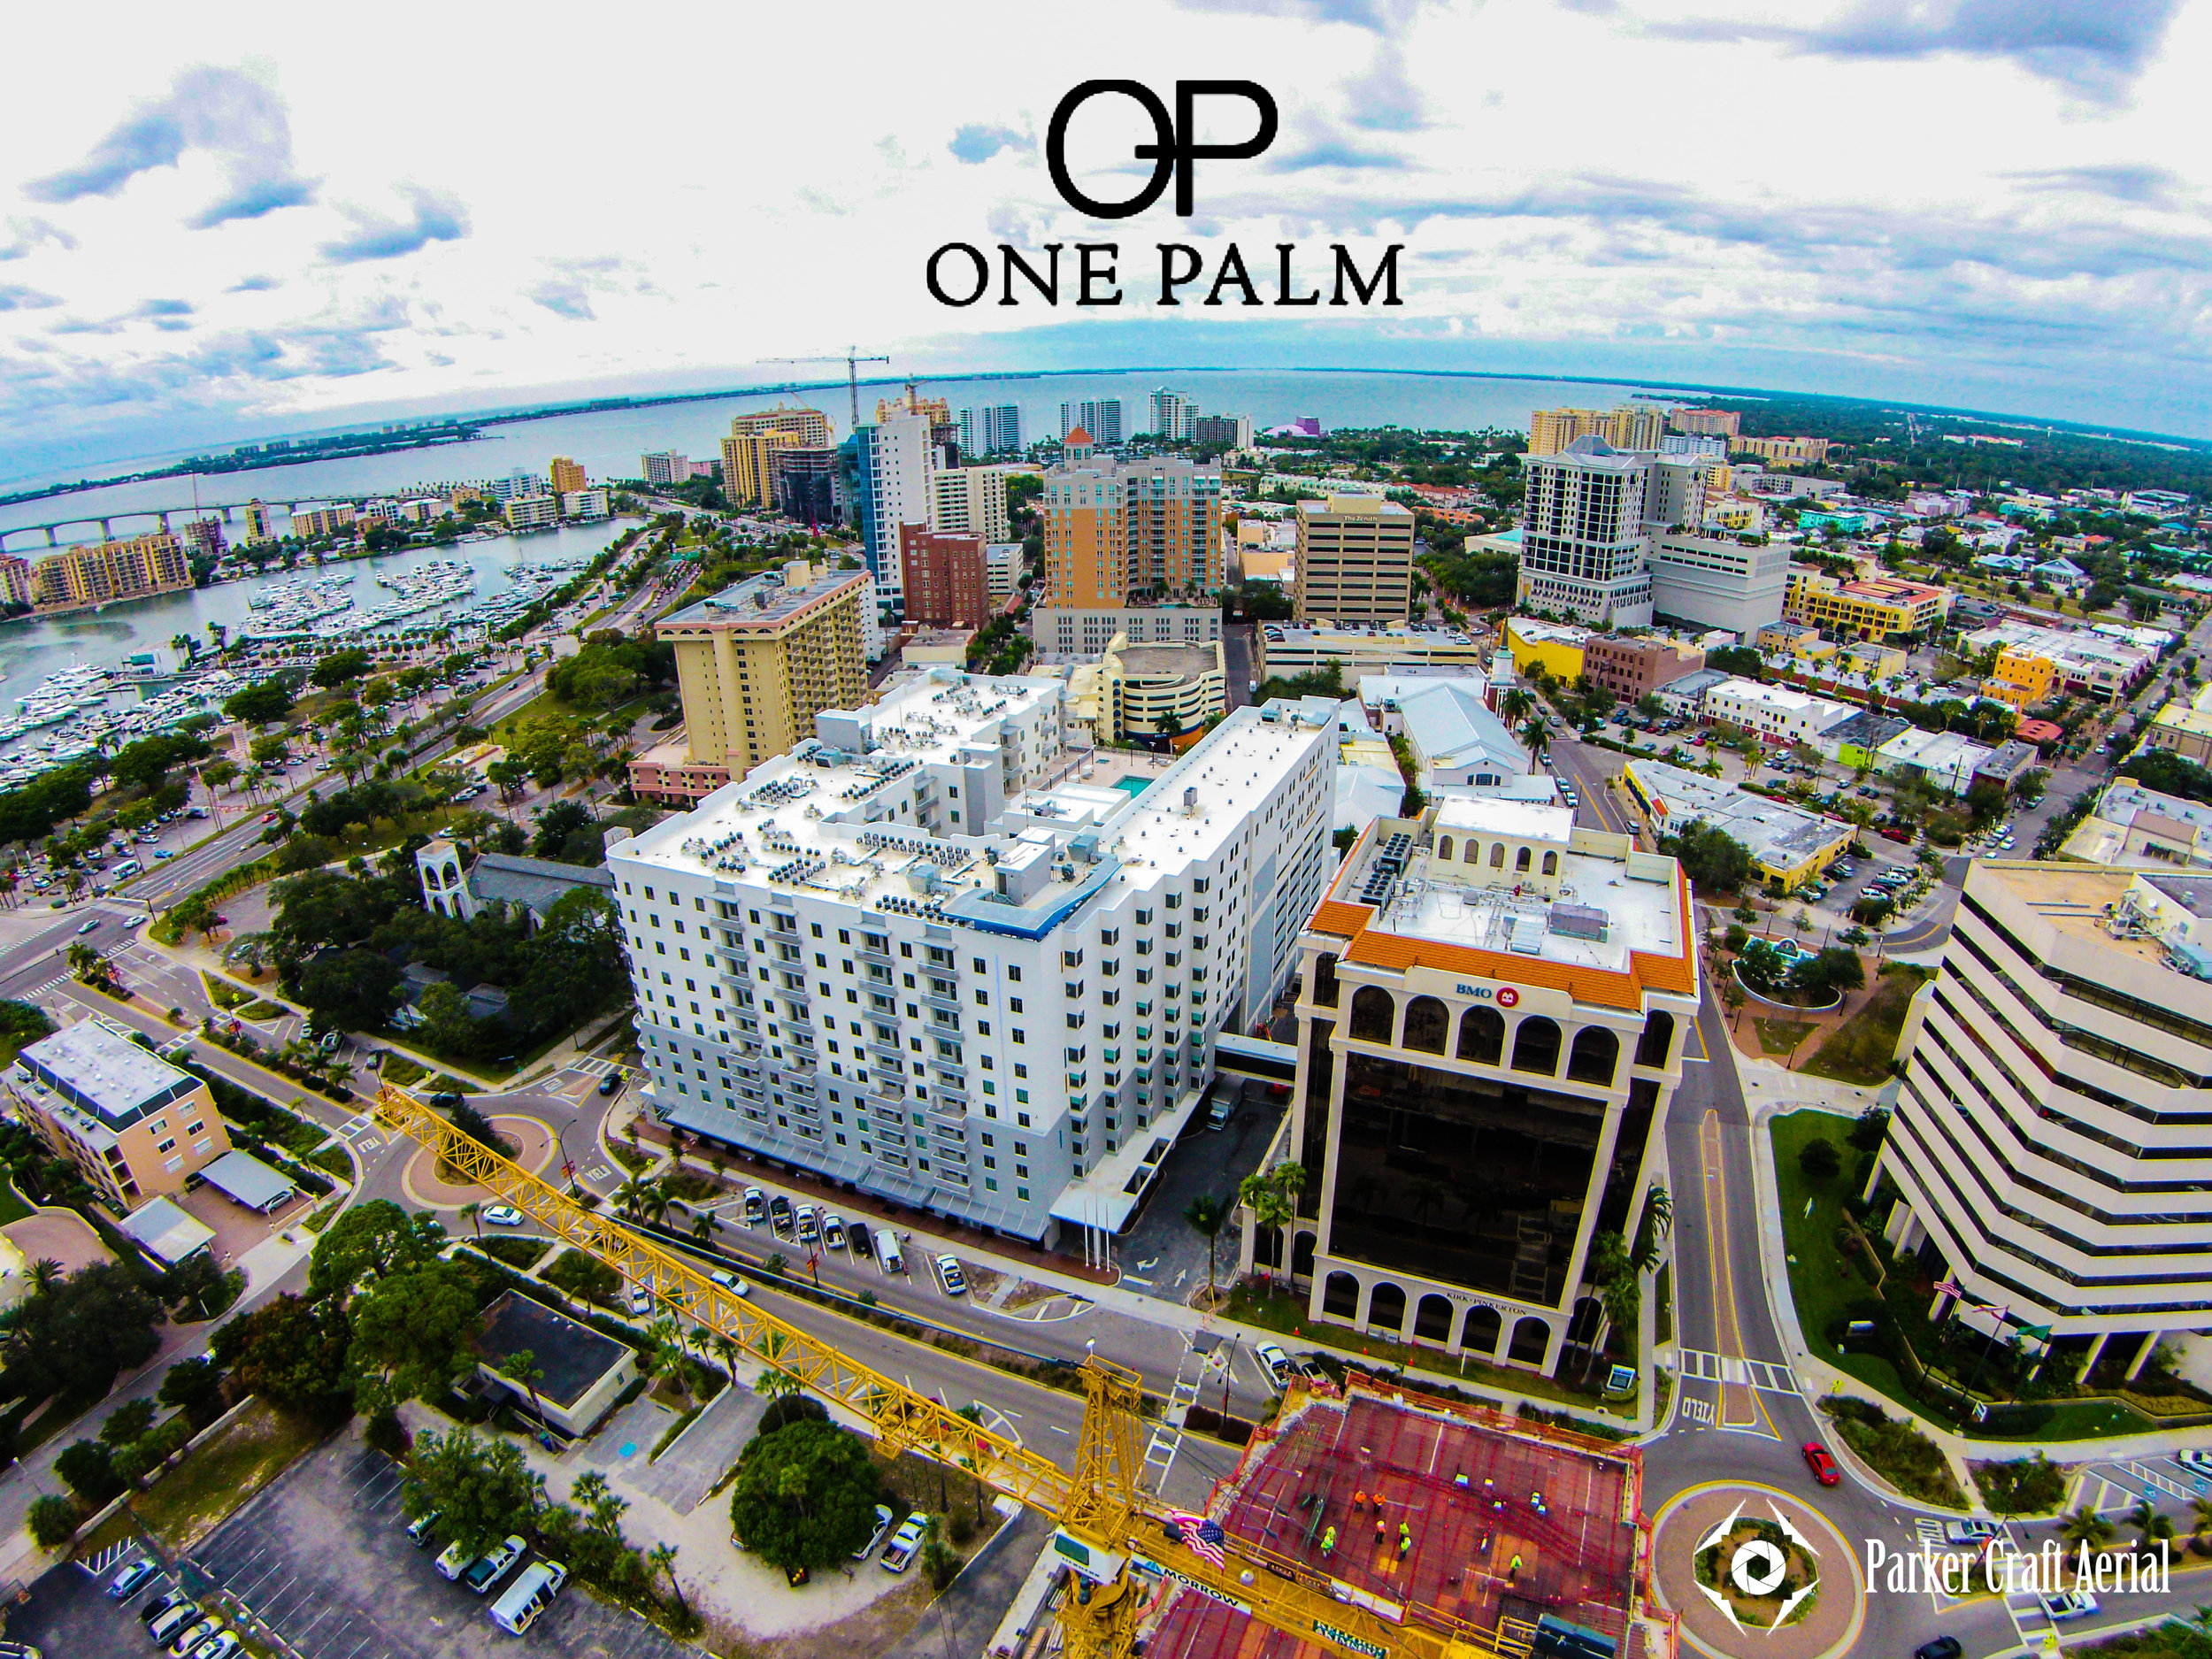 One Palm Aerial View